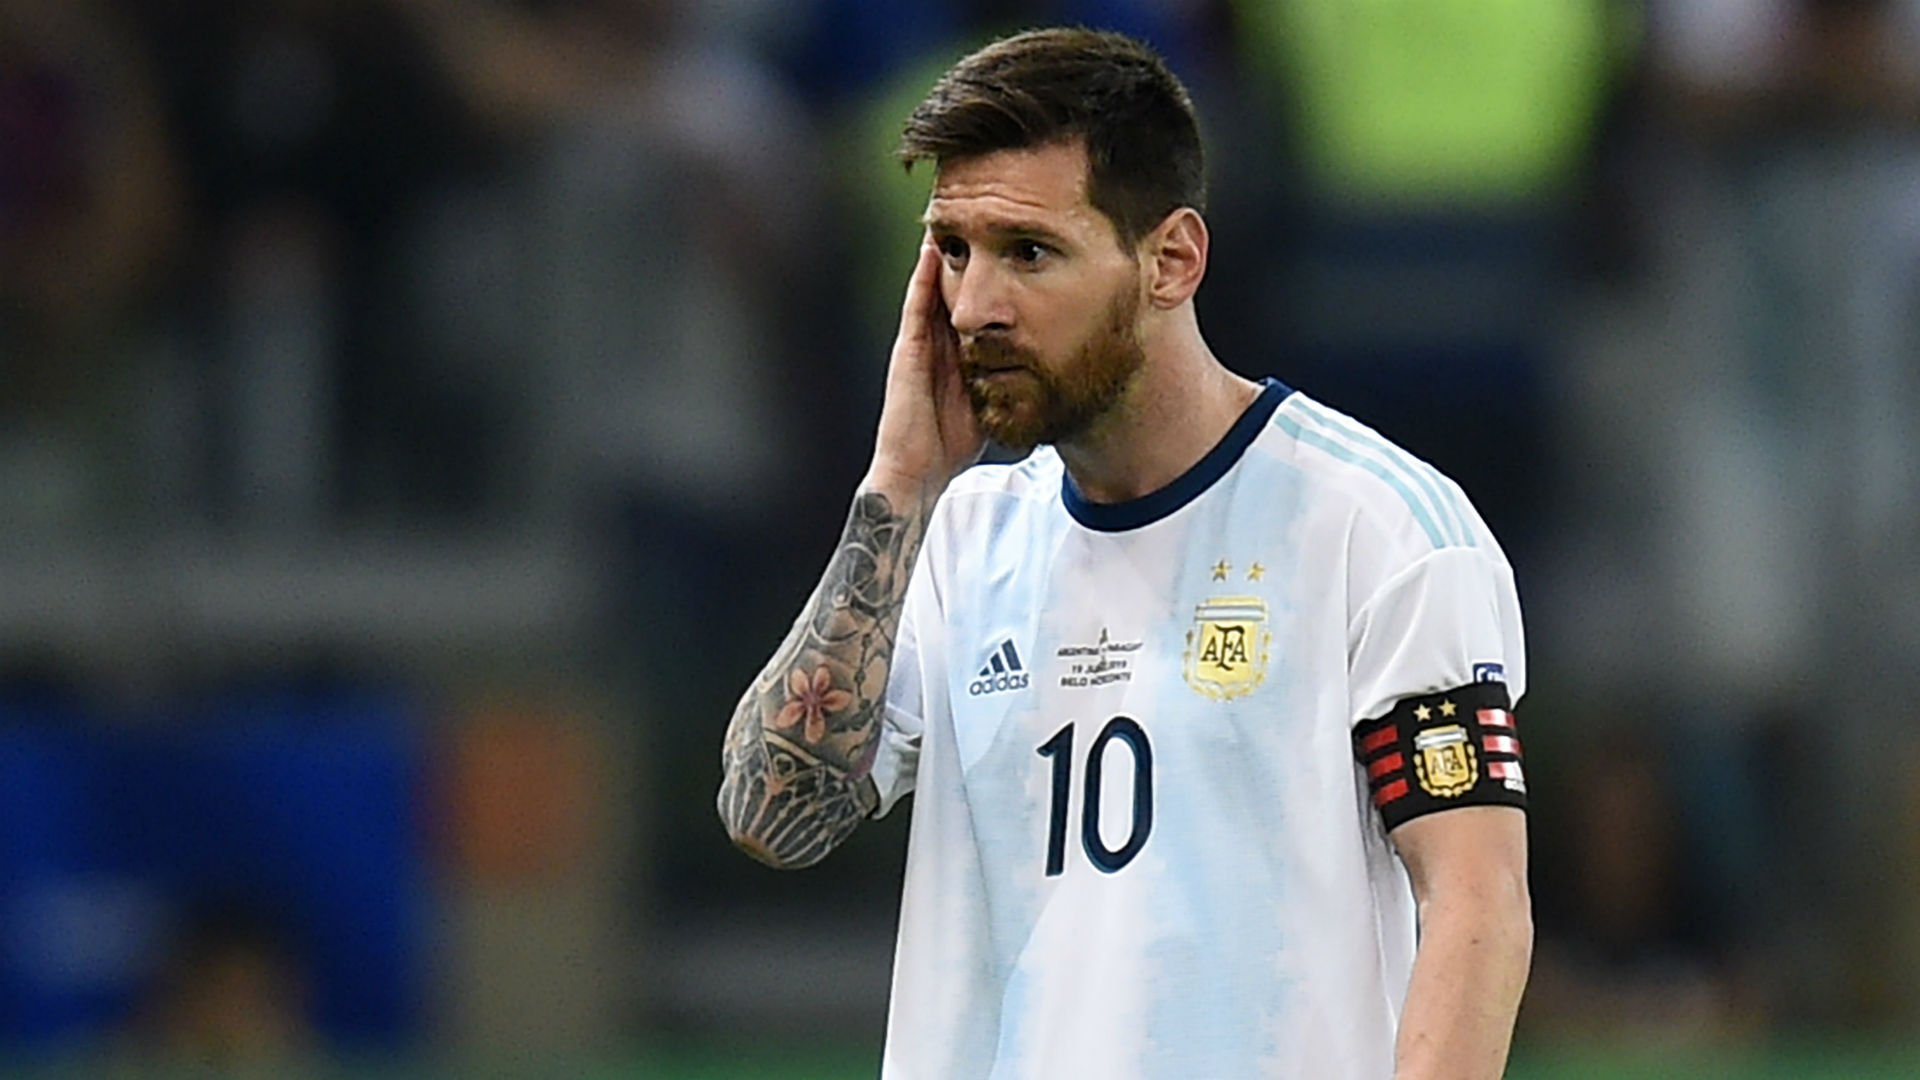 Qatar v Argentina: Messi desperate to avoid 'crazy' elimination